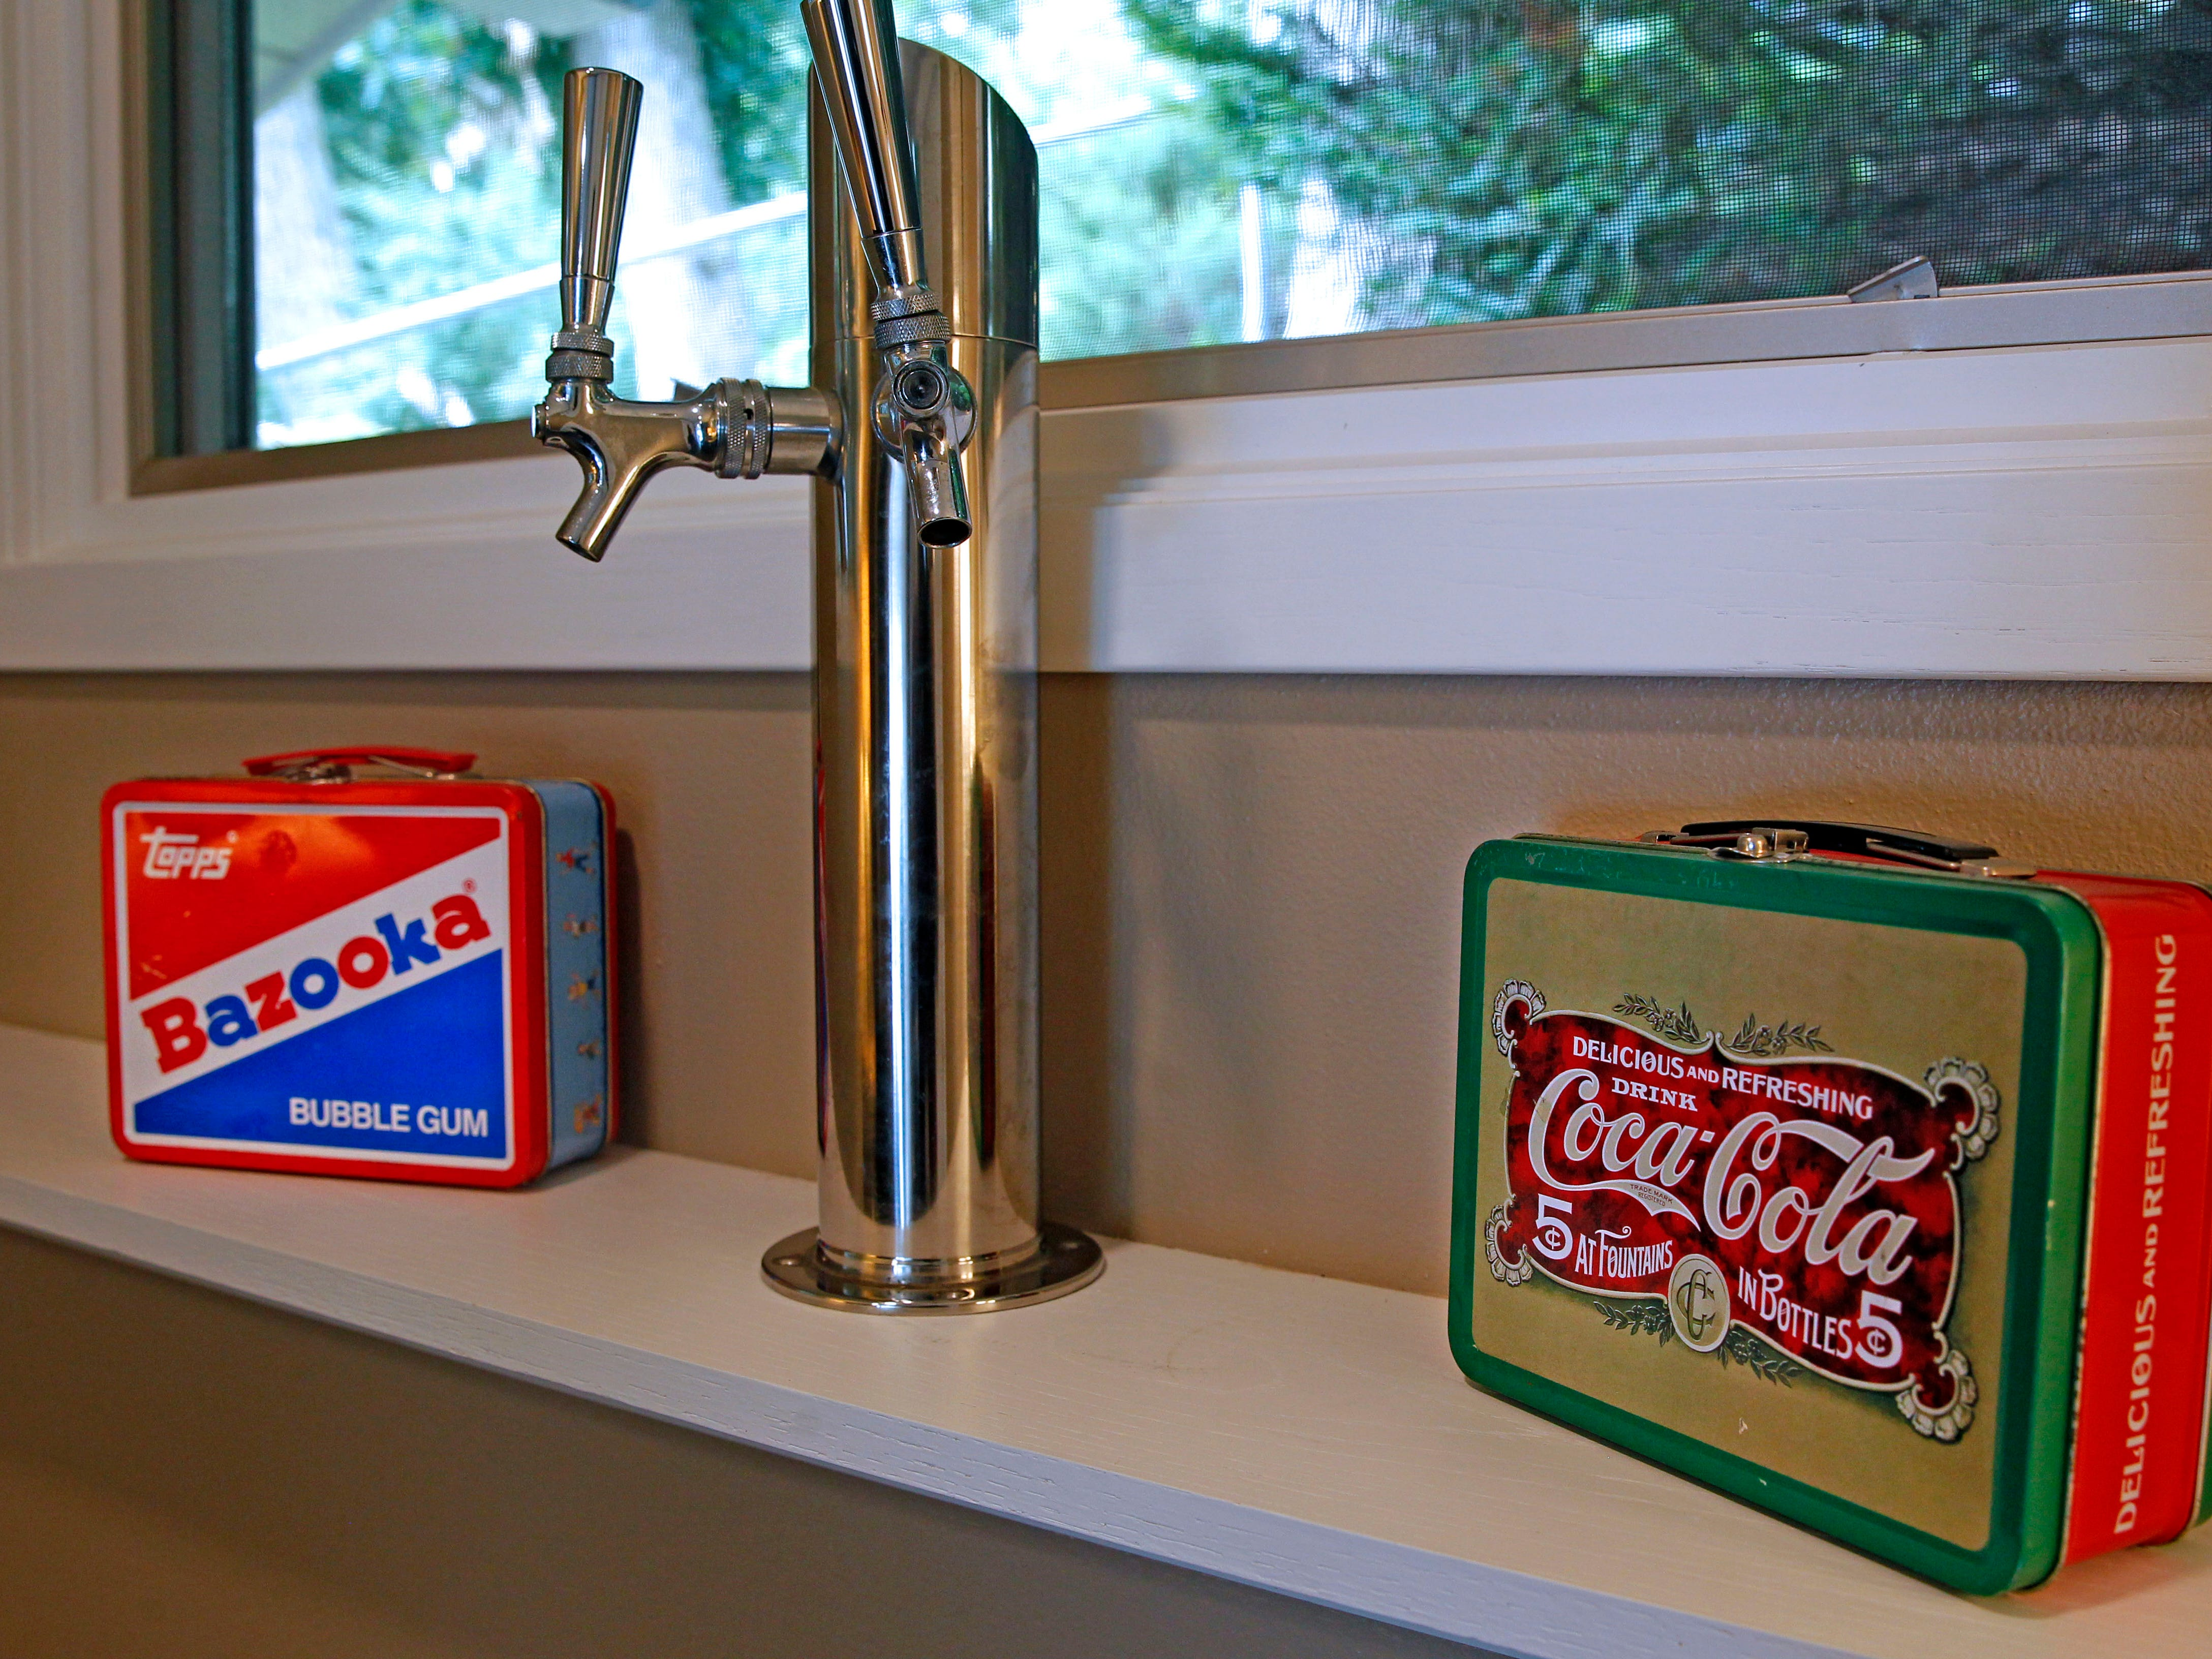 Vintage lunchboxes are part of the decor in an office window at the  Phillips family lake house.